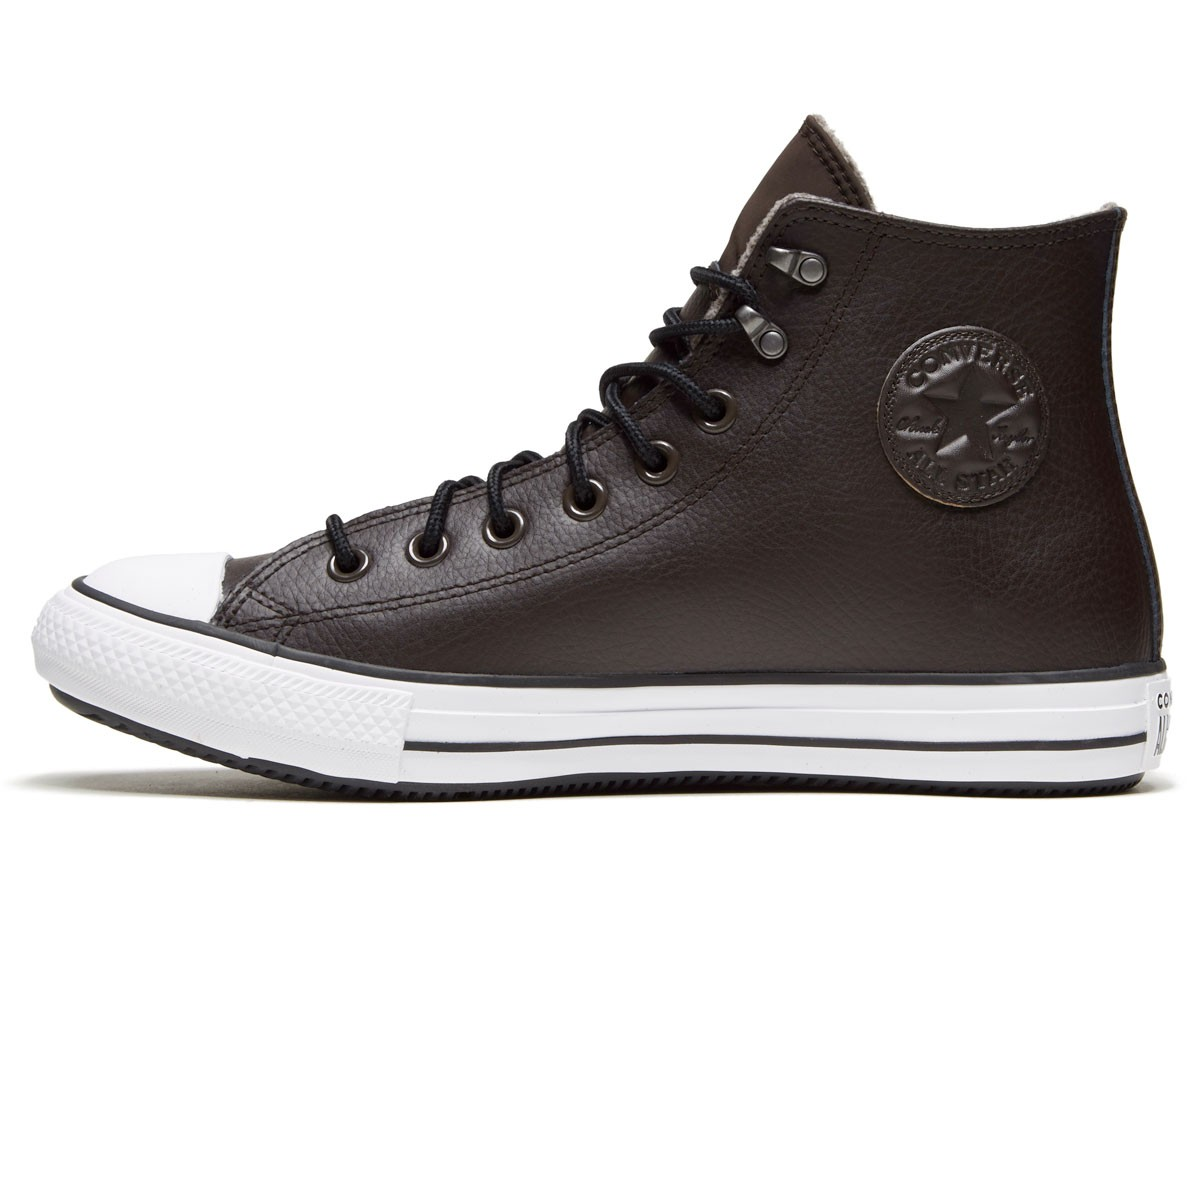 postre servir soborno  Converse Chuck Taylor All Star Winter Leather Shoes